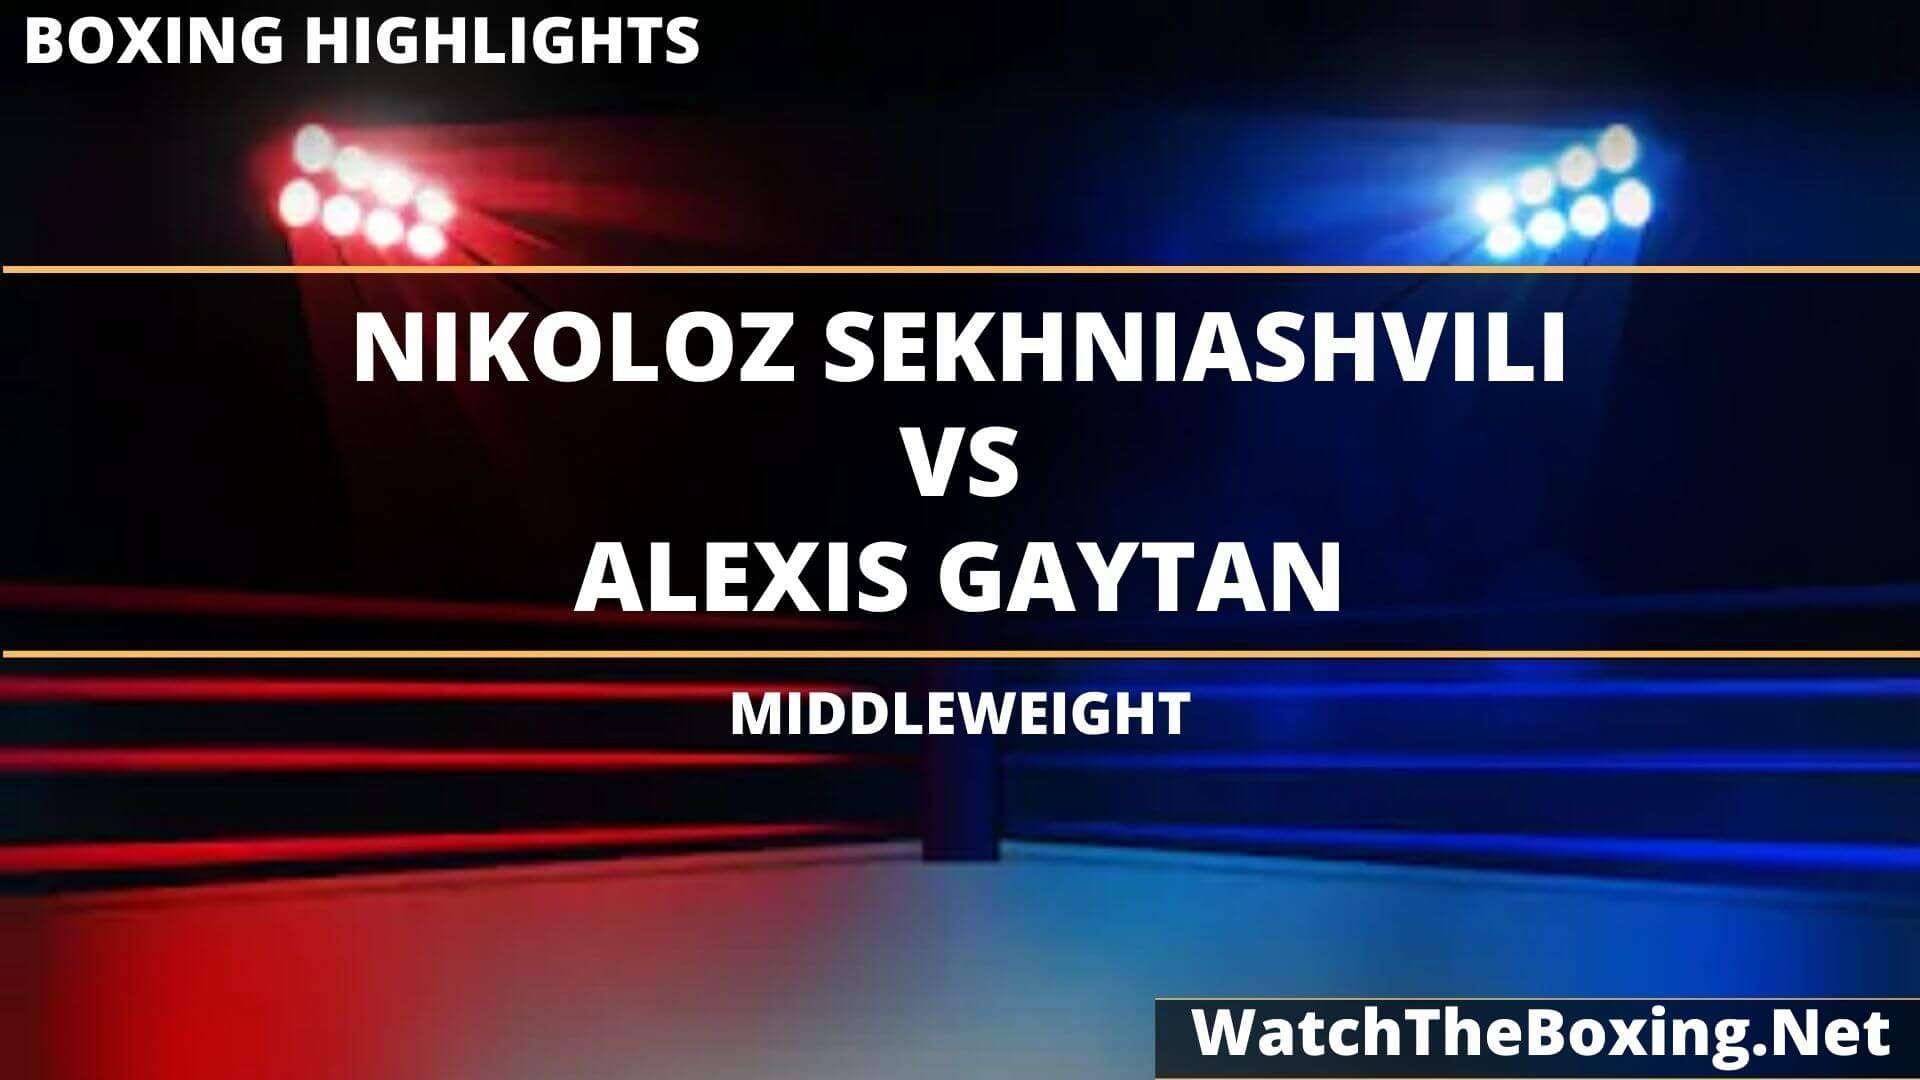 Nikoloz Sekhniashvili Vs Alexis Gaytan Highlights 2020 Middleweight